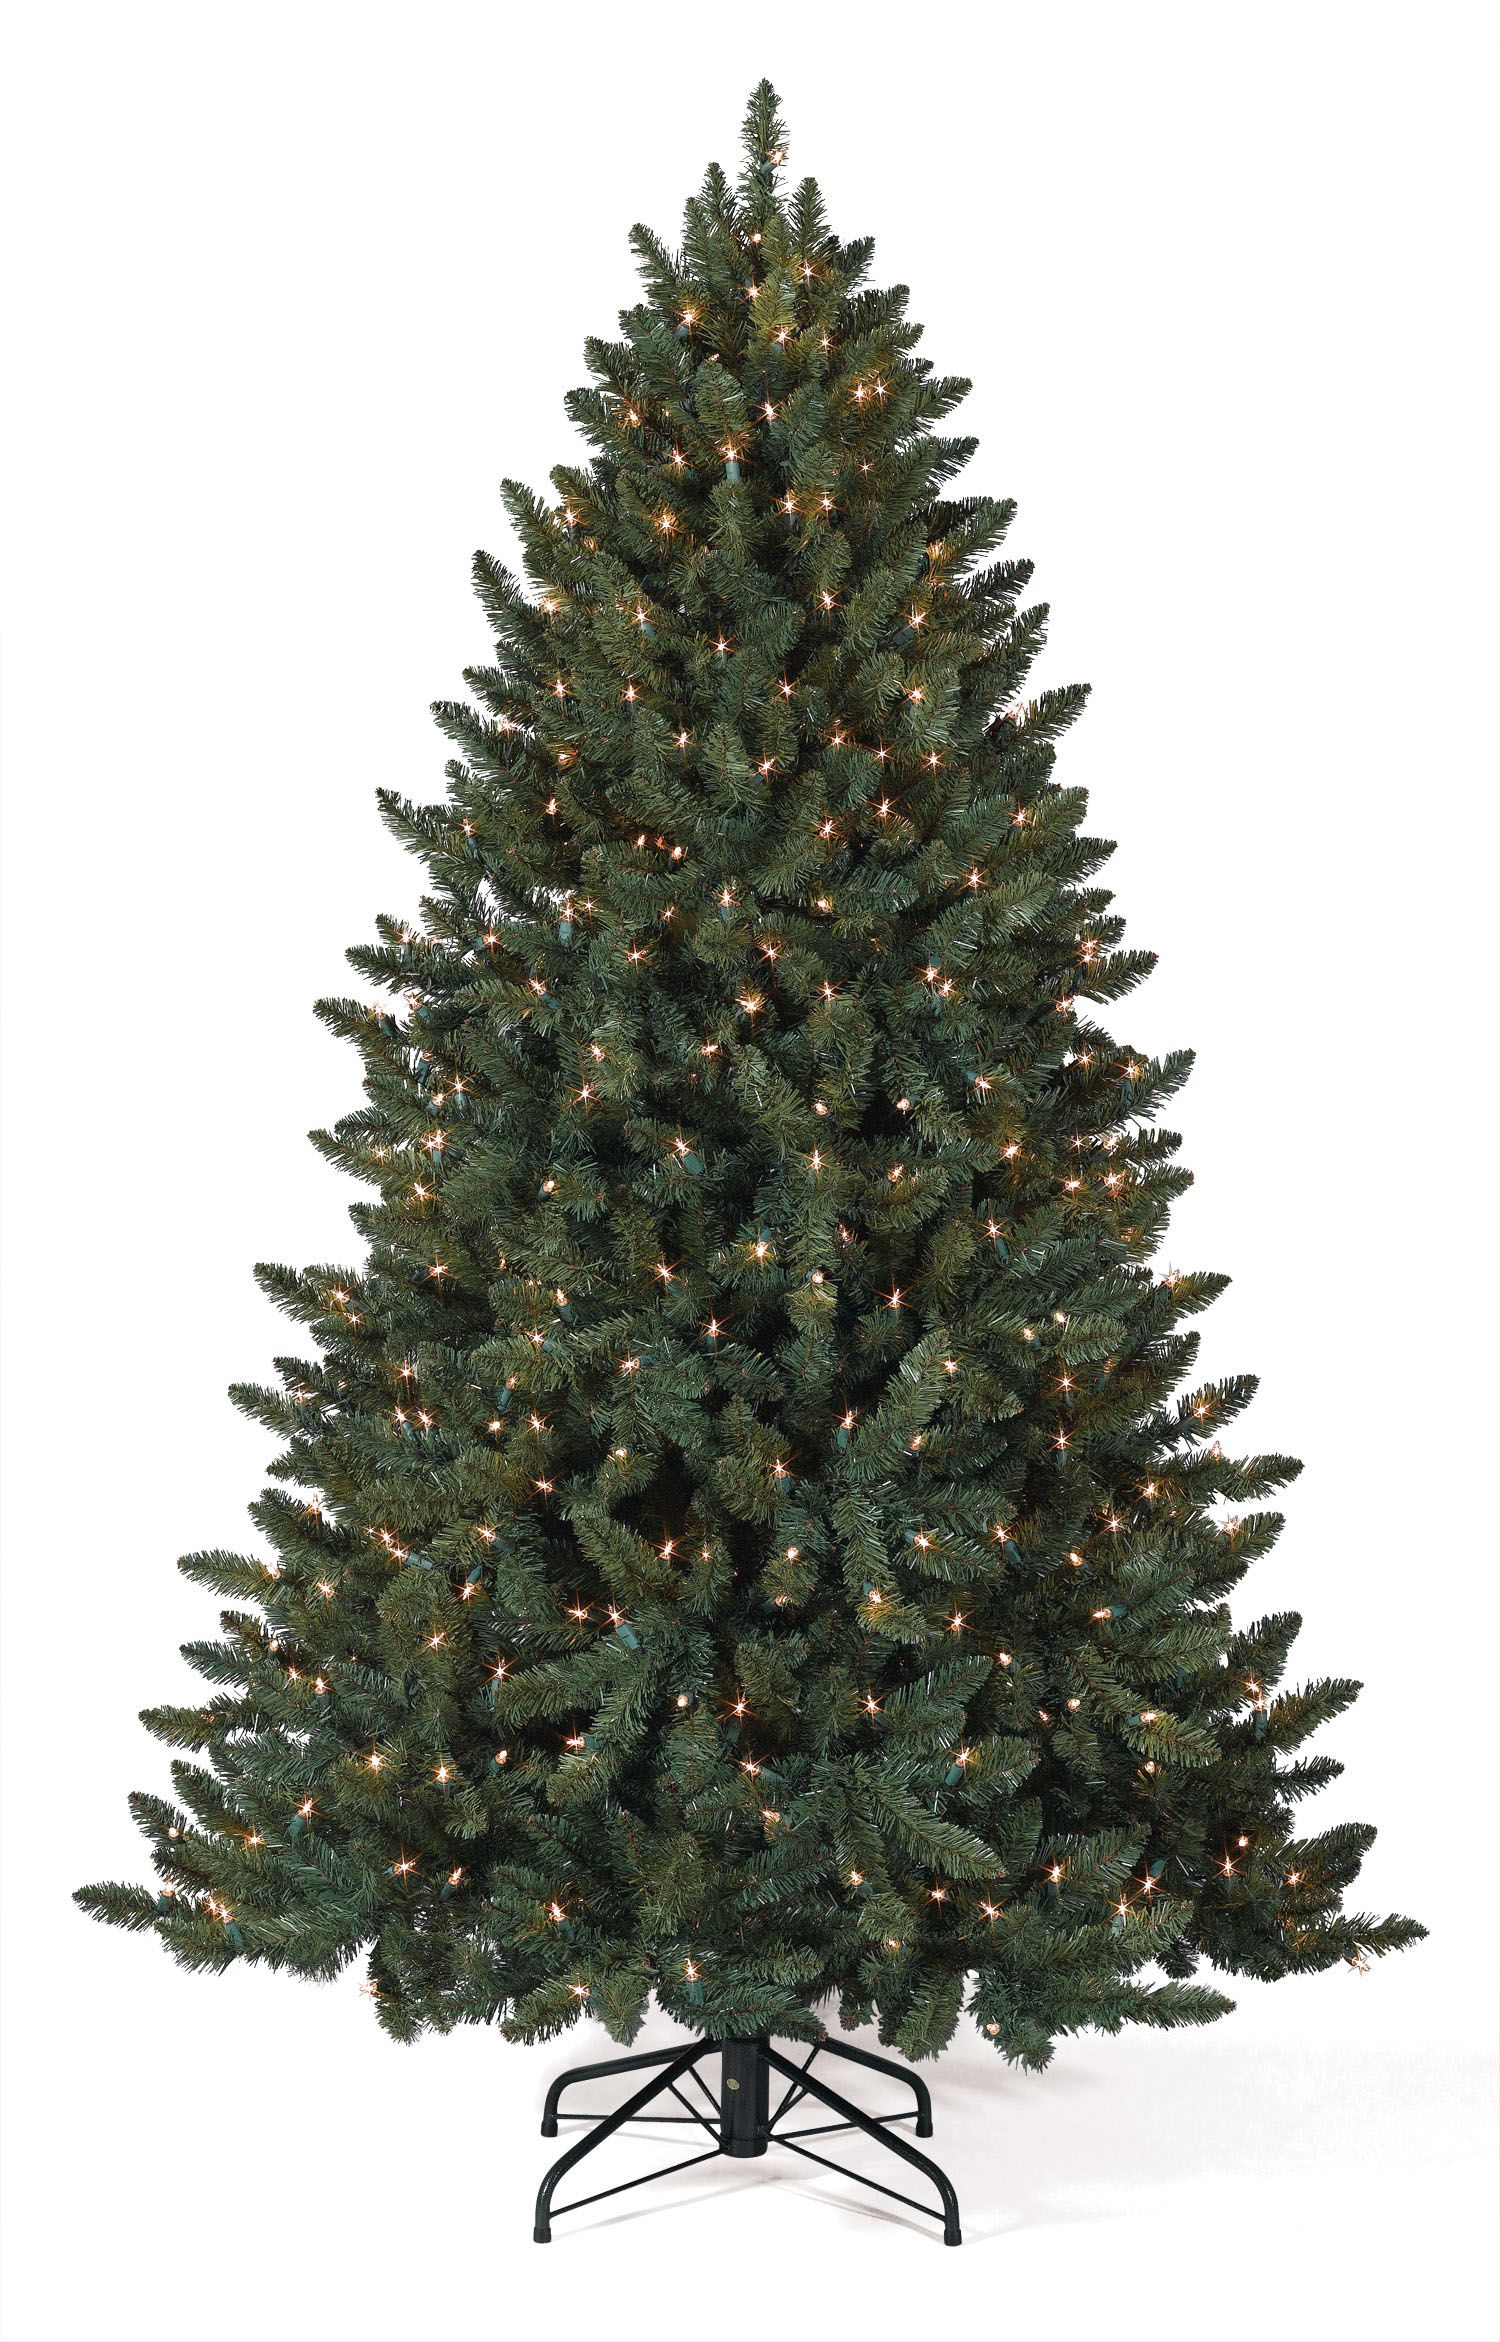 12 Foot Artificial Christmas Trees Pre-lit Part - 22: 12 Foot Pre Lit Balsam Spruce Artificial Christmas Tree With Clear Lights